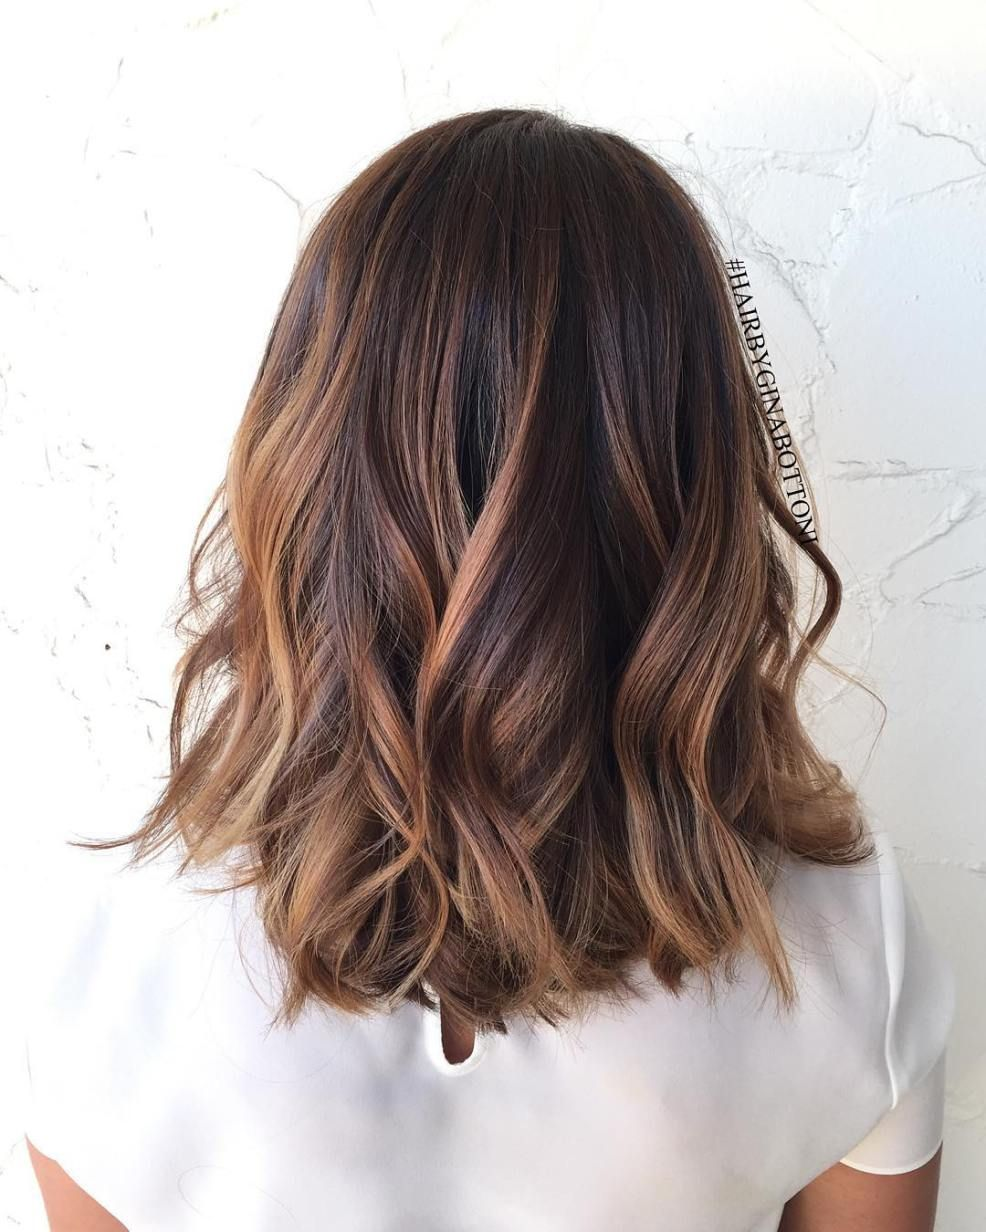 60 Looks With Caramel Highlights On Brown And Dark Brown Hair Brunette Hair Color Hair Styles Chocolate Brown Hair Color